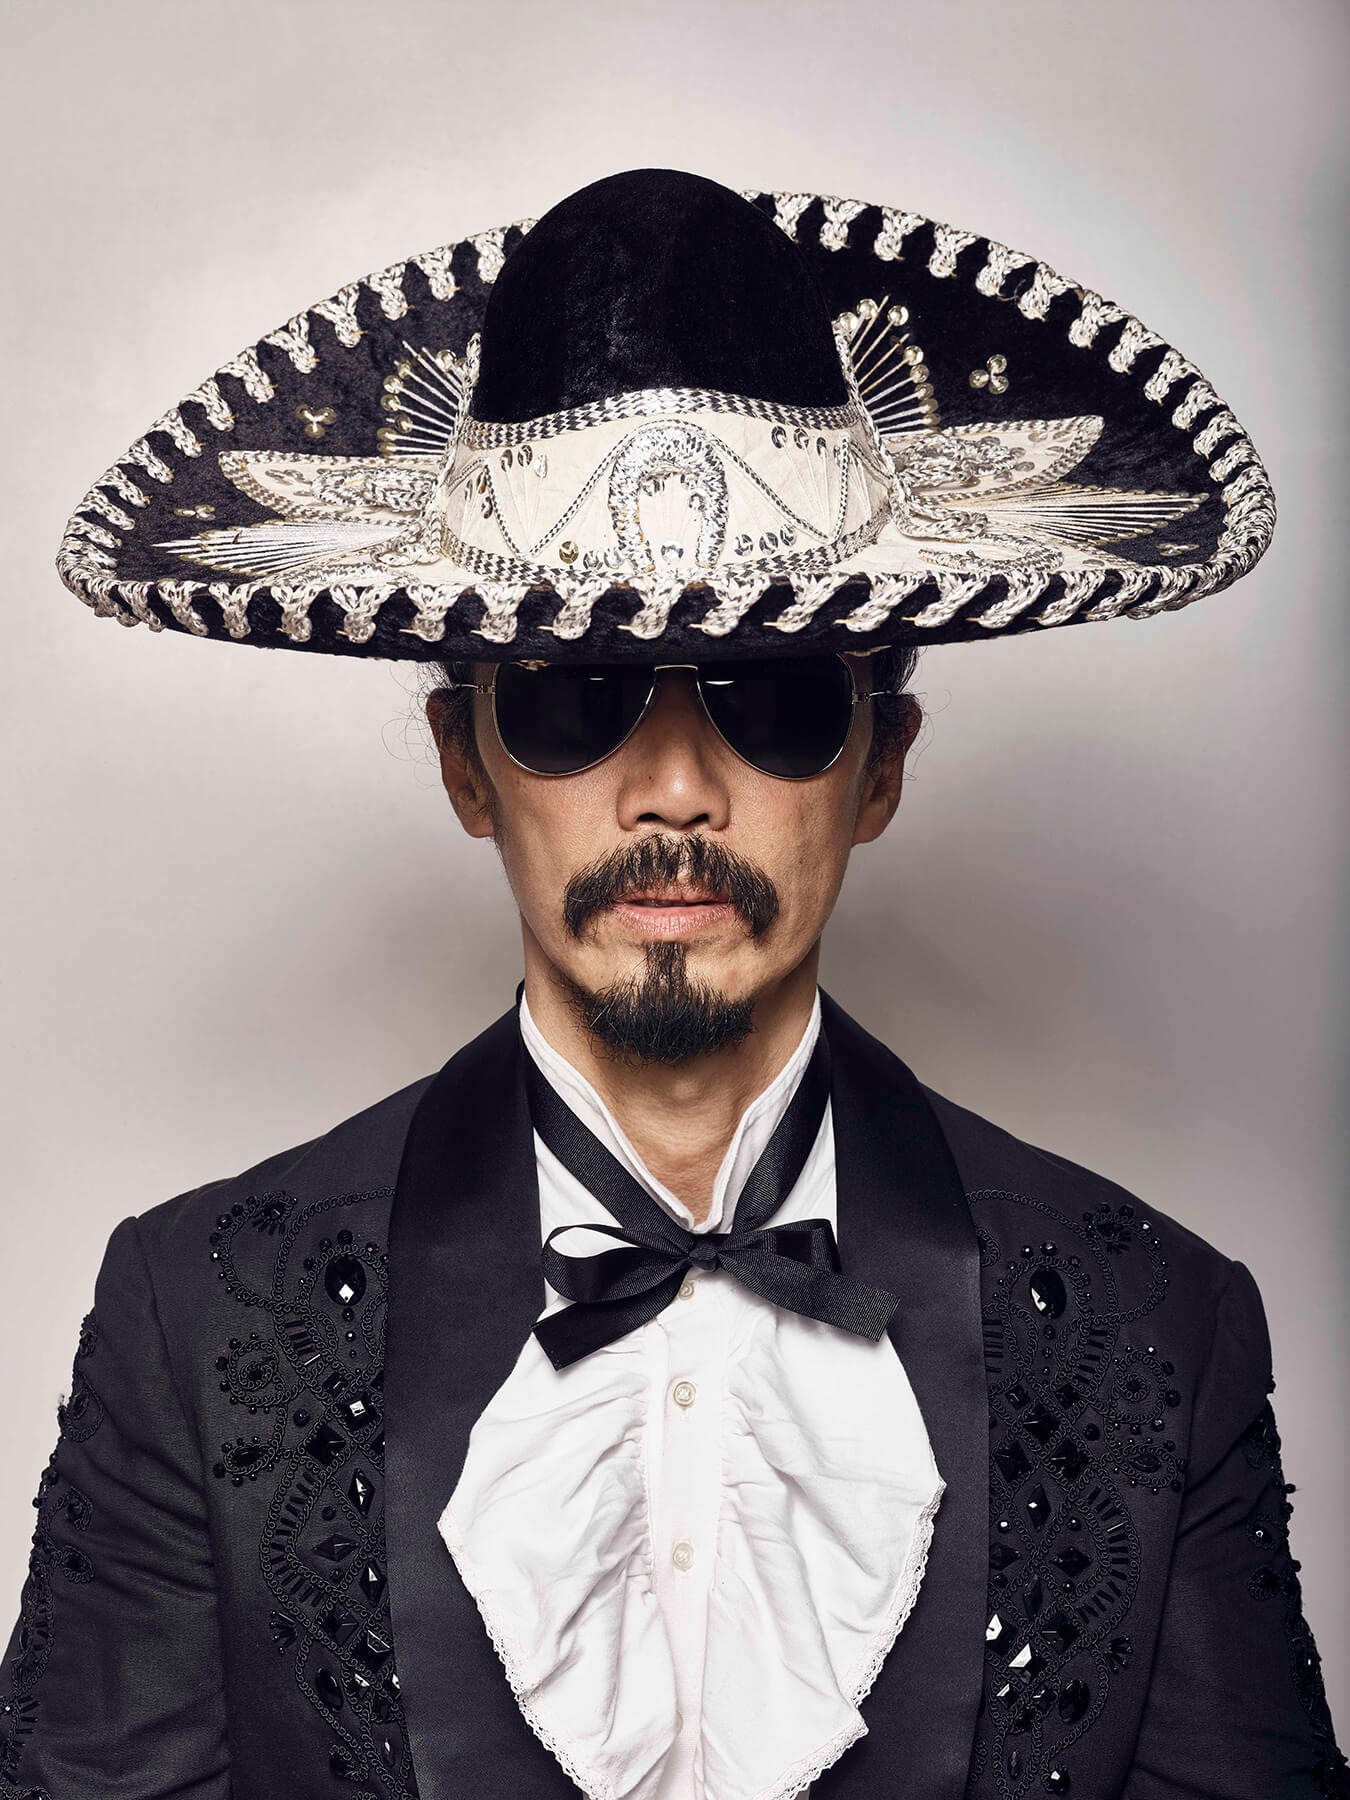 15 Sep 2017: Derong is styled in a charro suit to mark Independence Day in Mexico